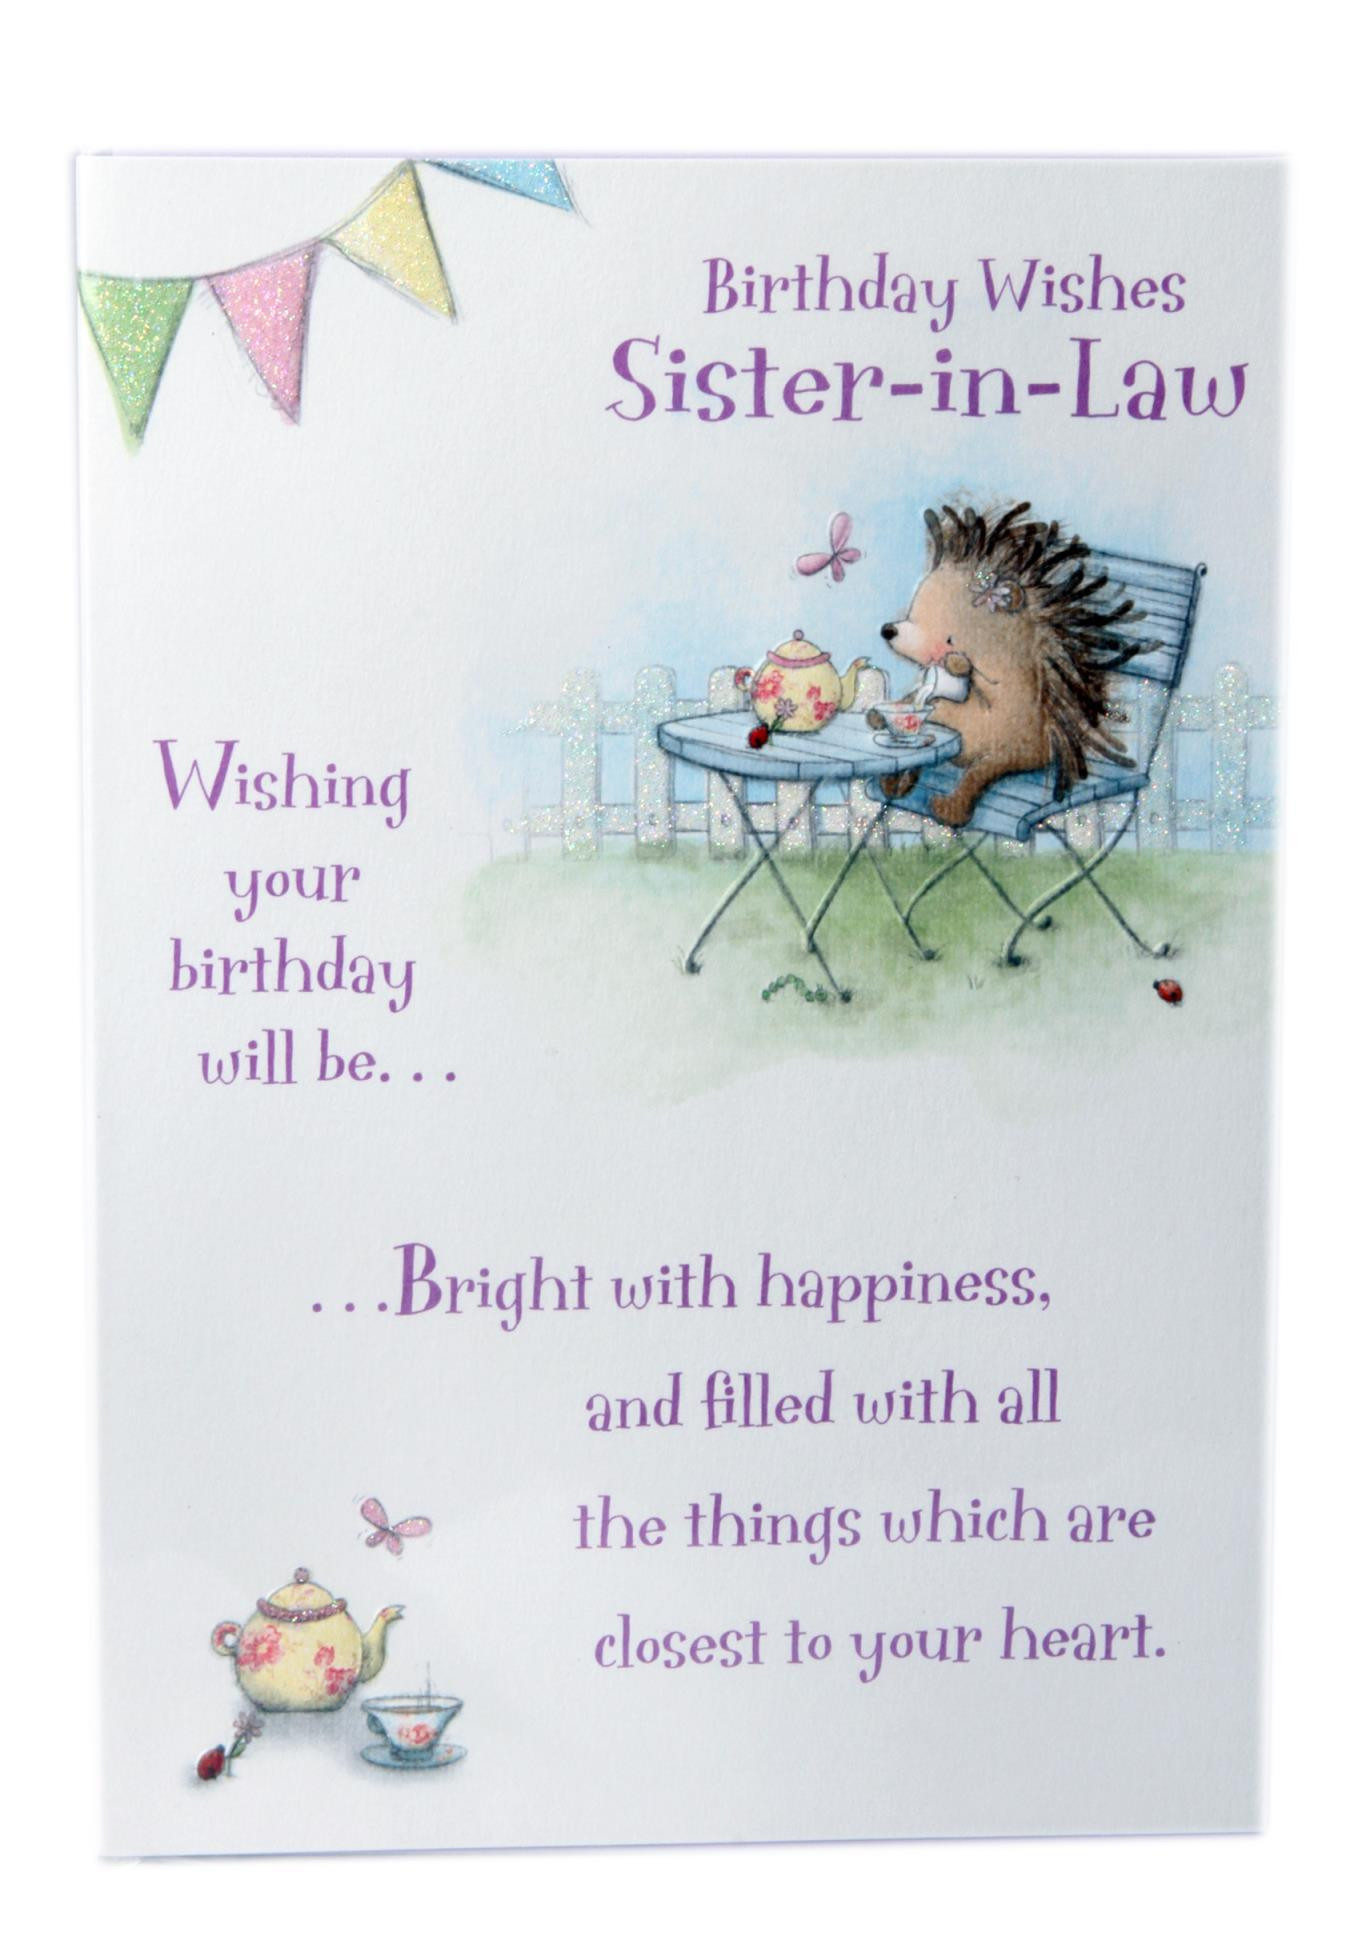 Happy Birthday Quotes For Sister  Happy Birthday Sister In Law Quotes & Wishes